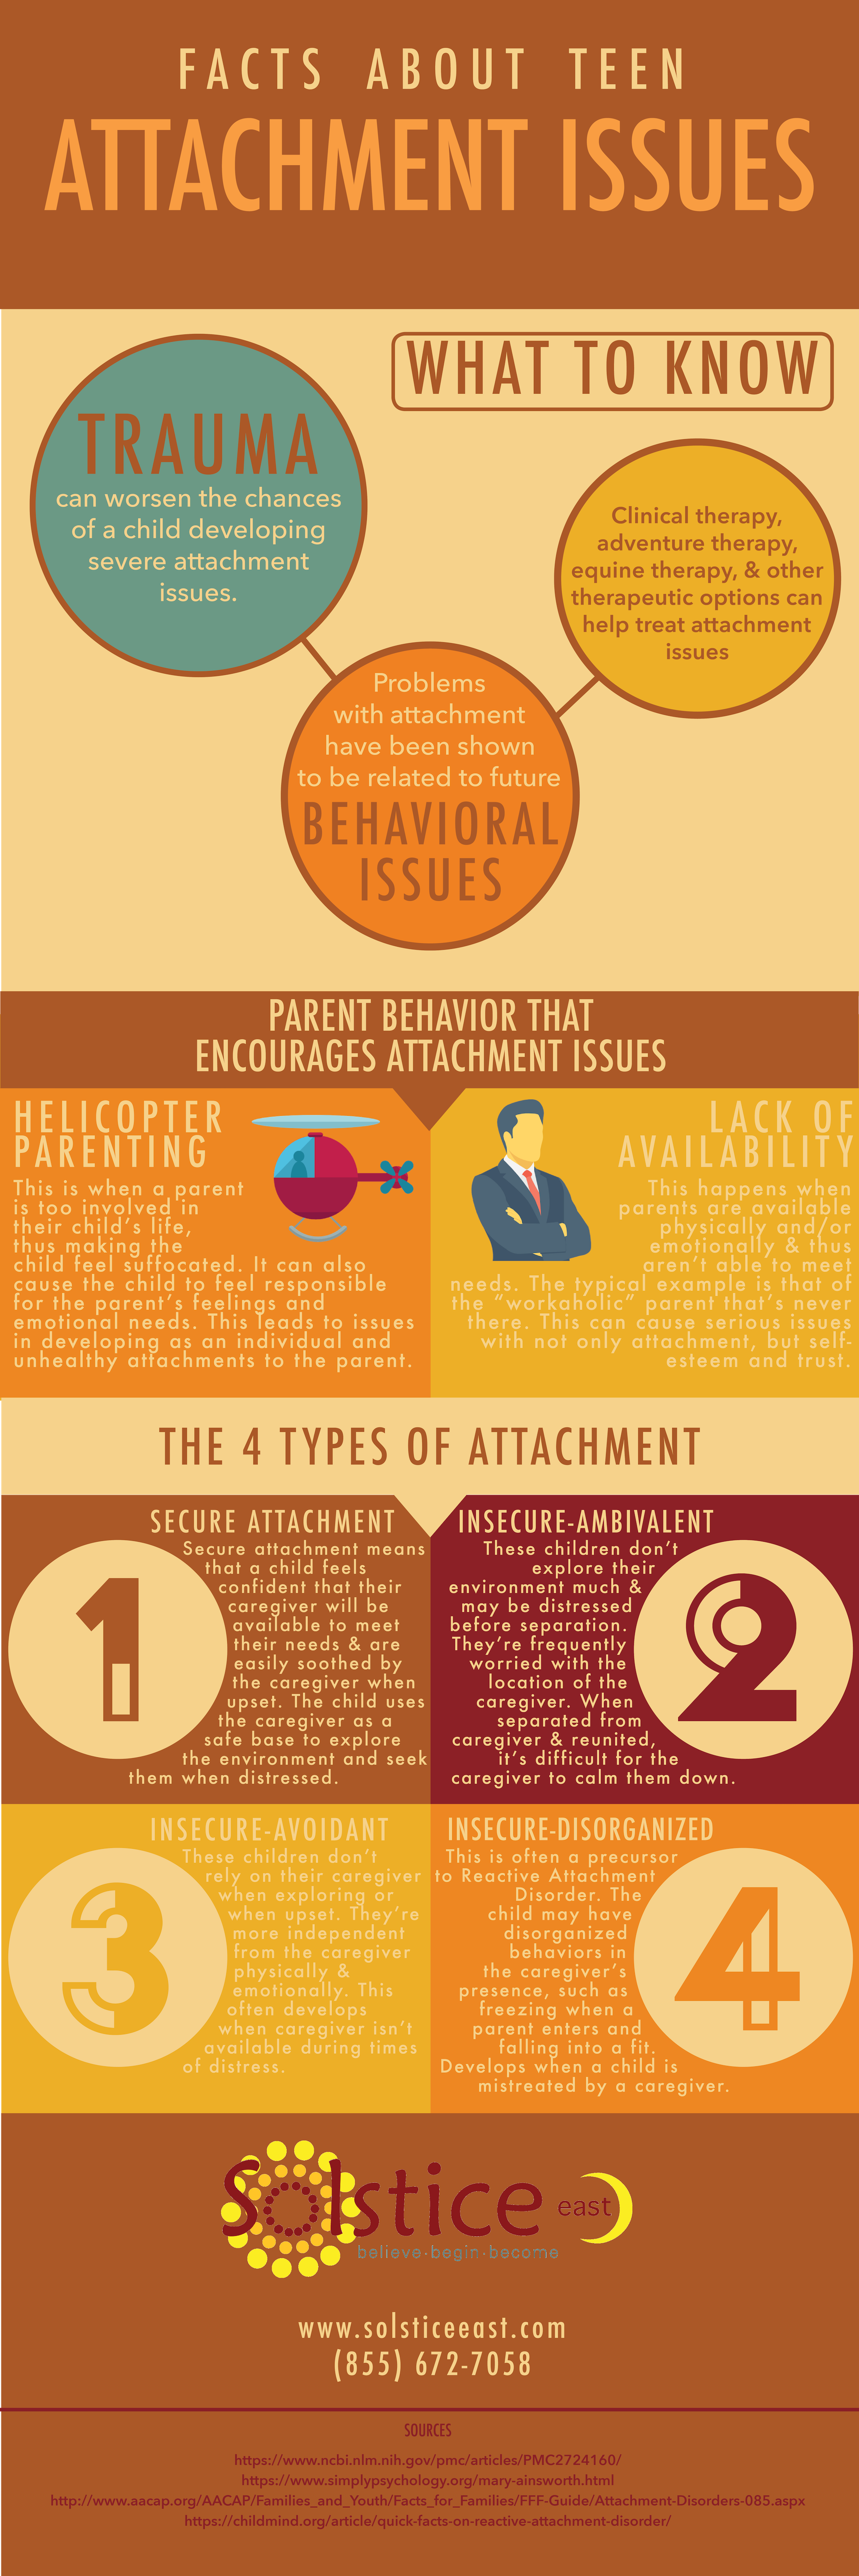 Teen Treatment Centers For Adolescents With Attachment Issues